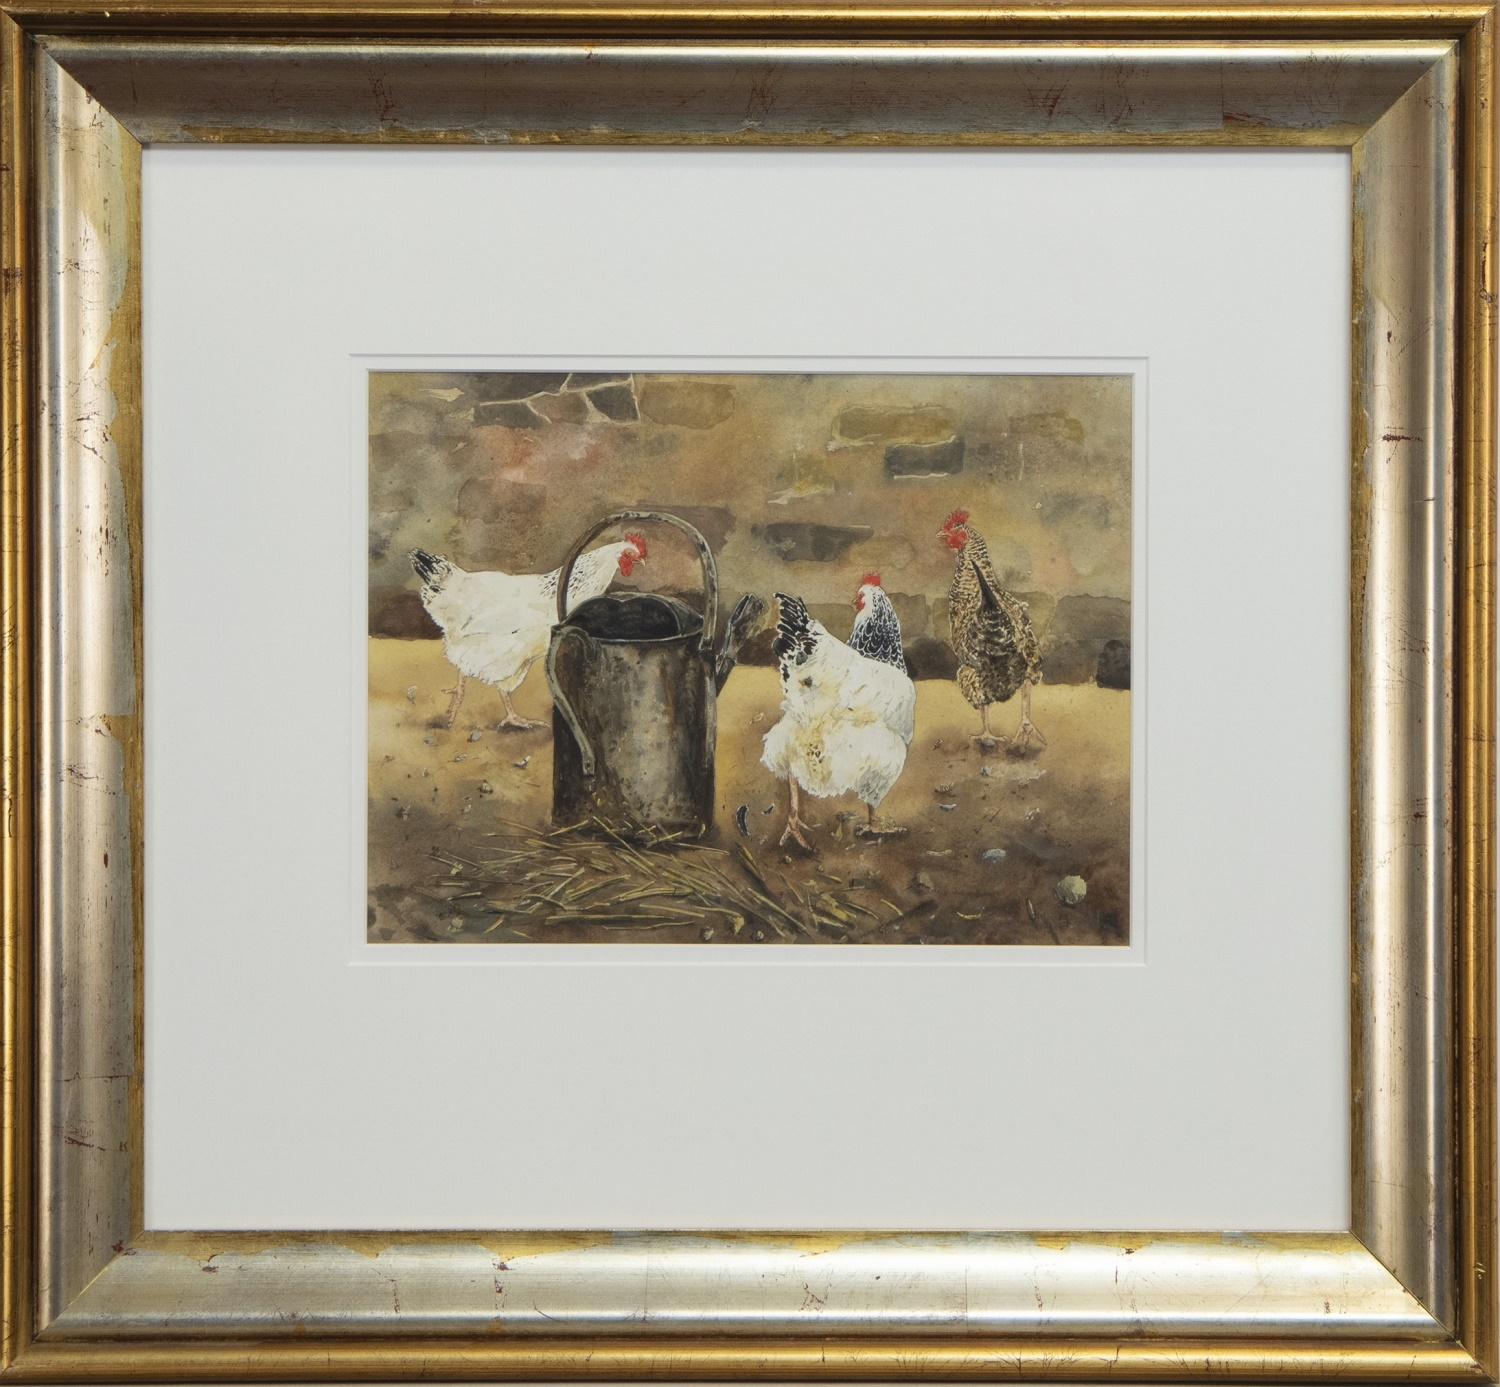 TWO WATERCOLOURS OF HENS BY SUSAN MITCHELL - Image 2 of 2